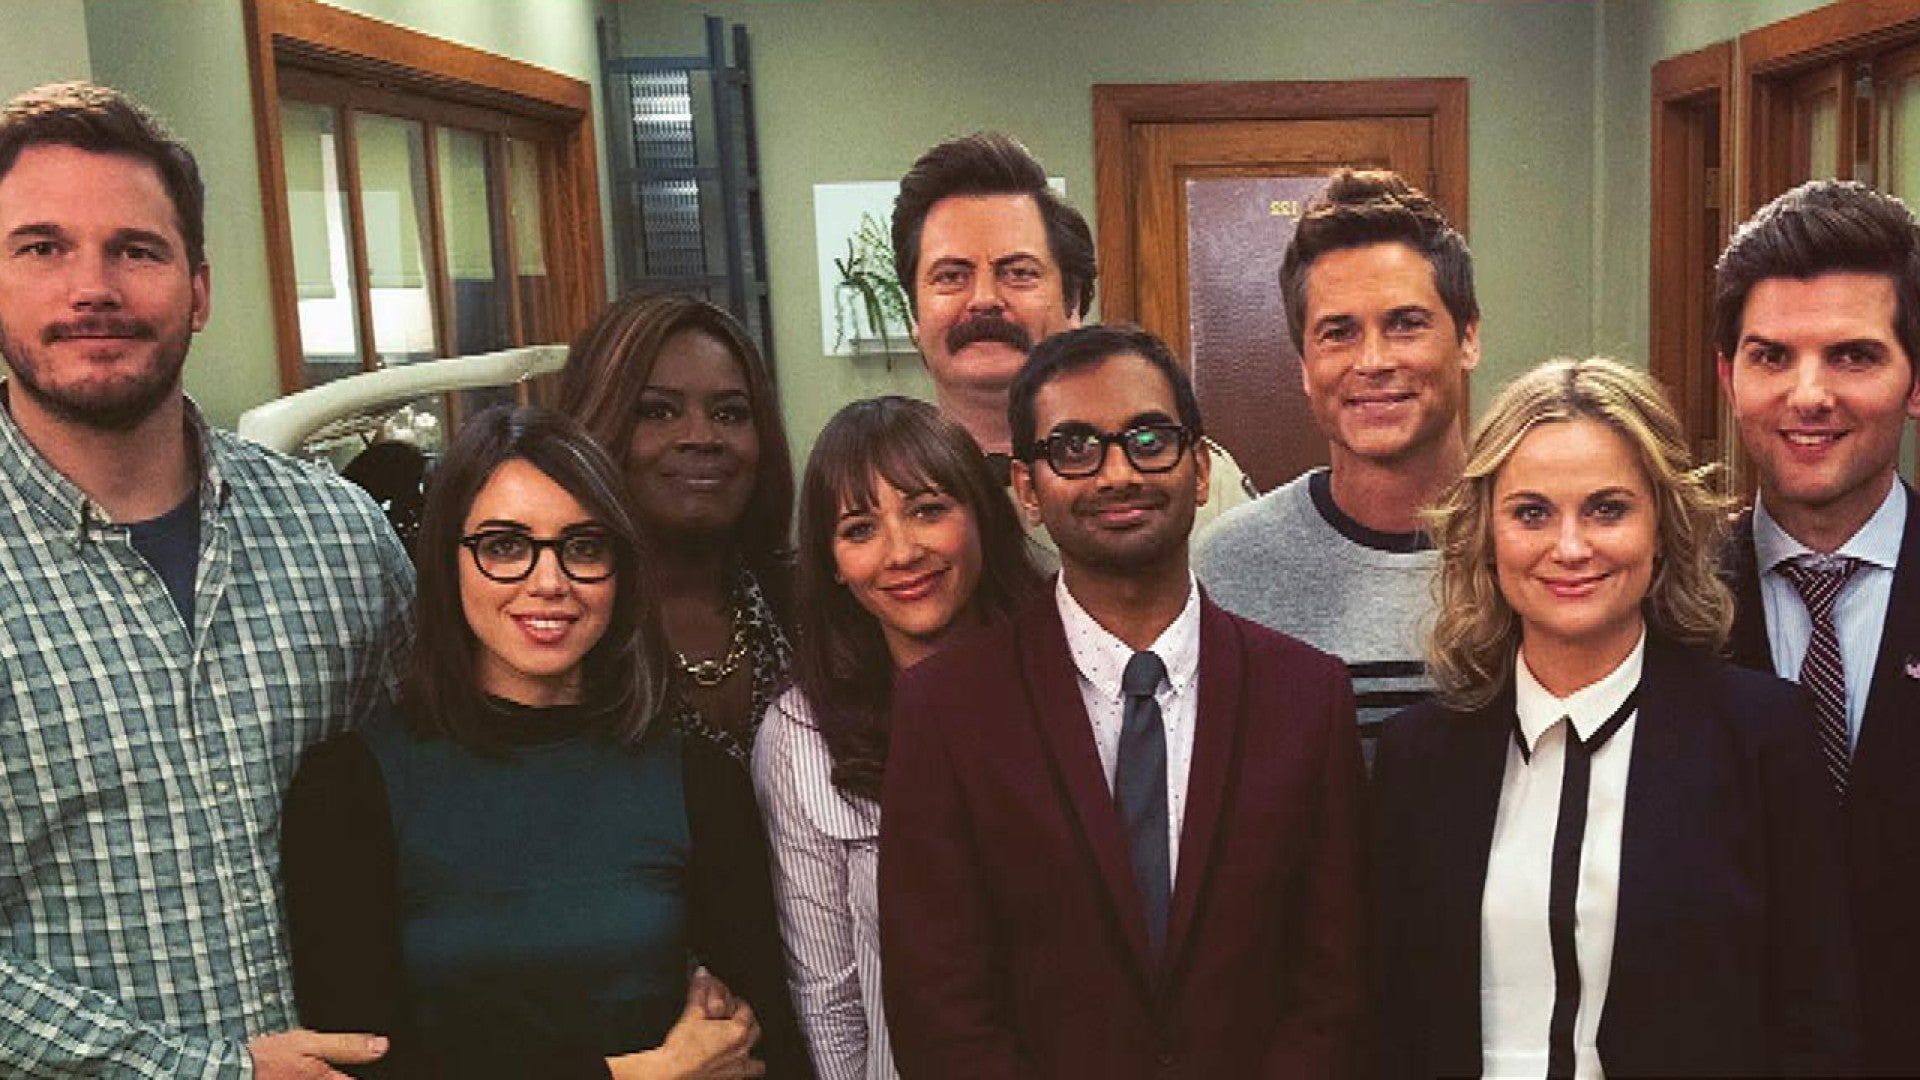 10 Things We Learned At The Parks And Rec 10 Year Anniversary